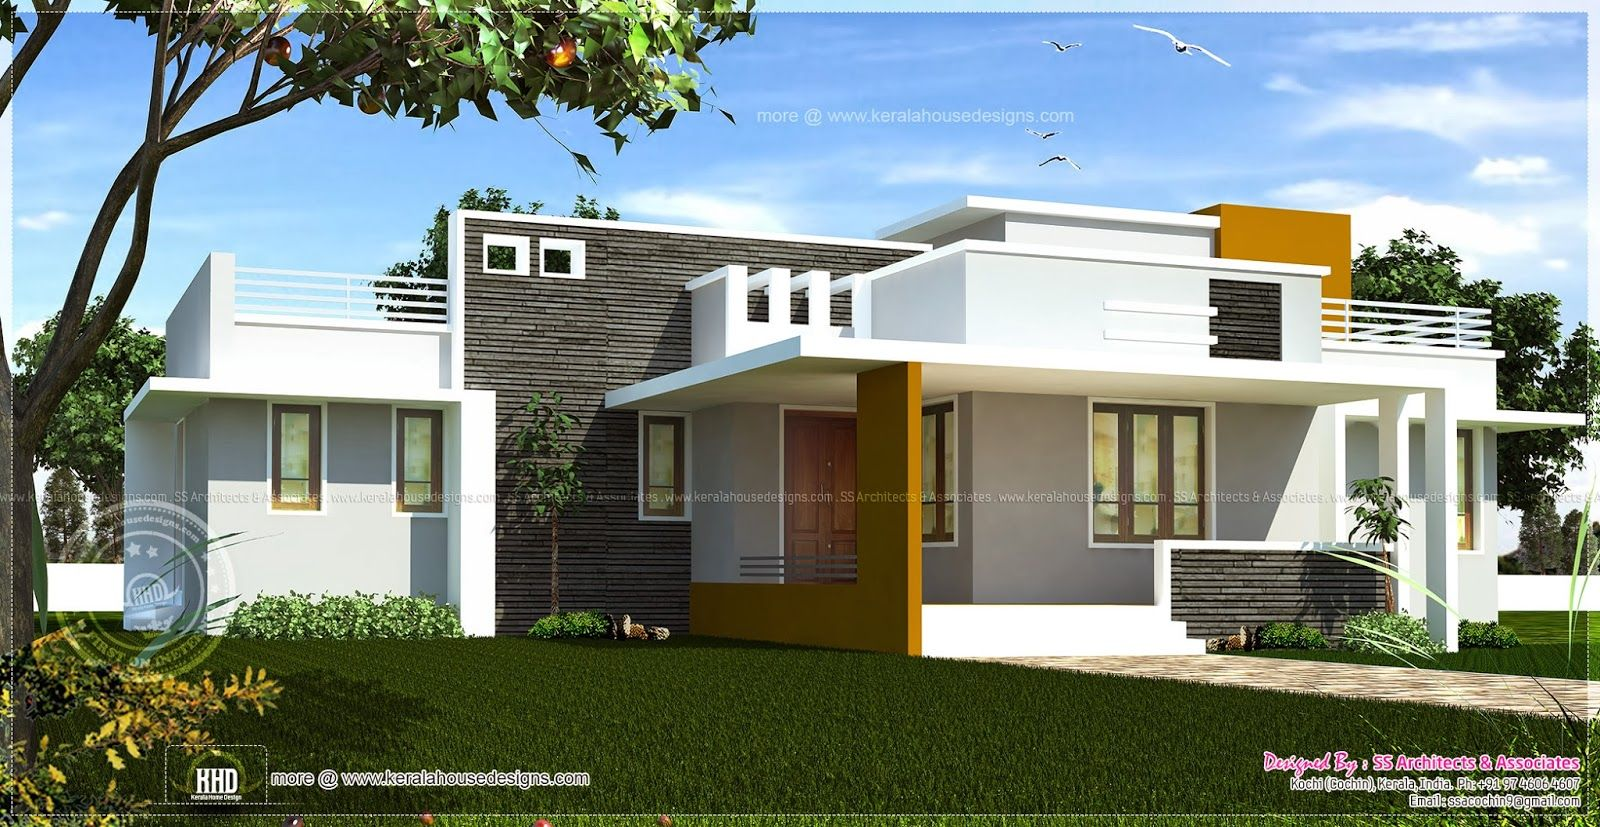 Excellent single home designs single floor contemporary for State of the art house designs